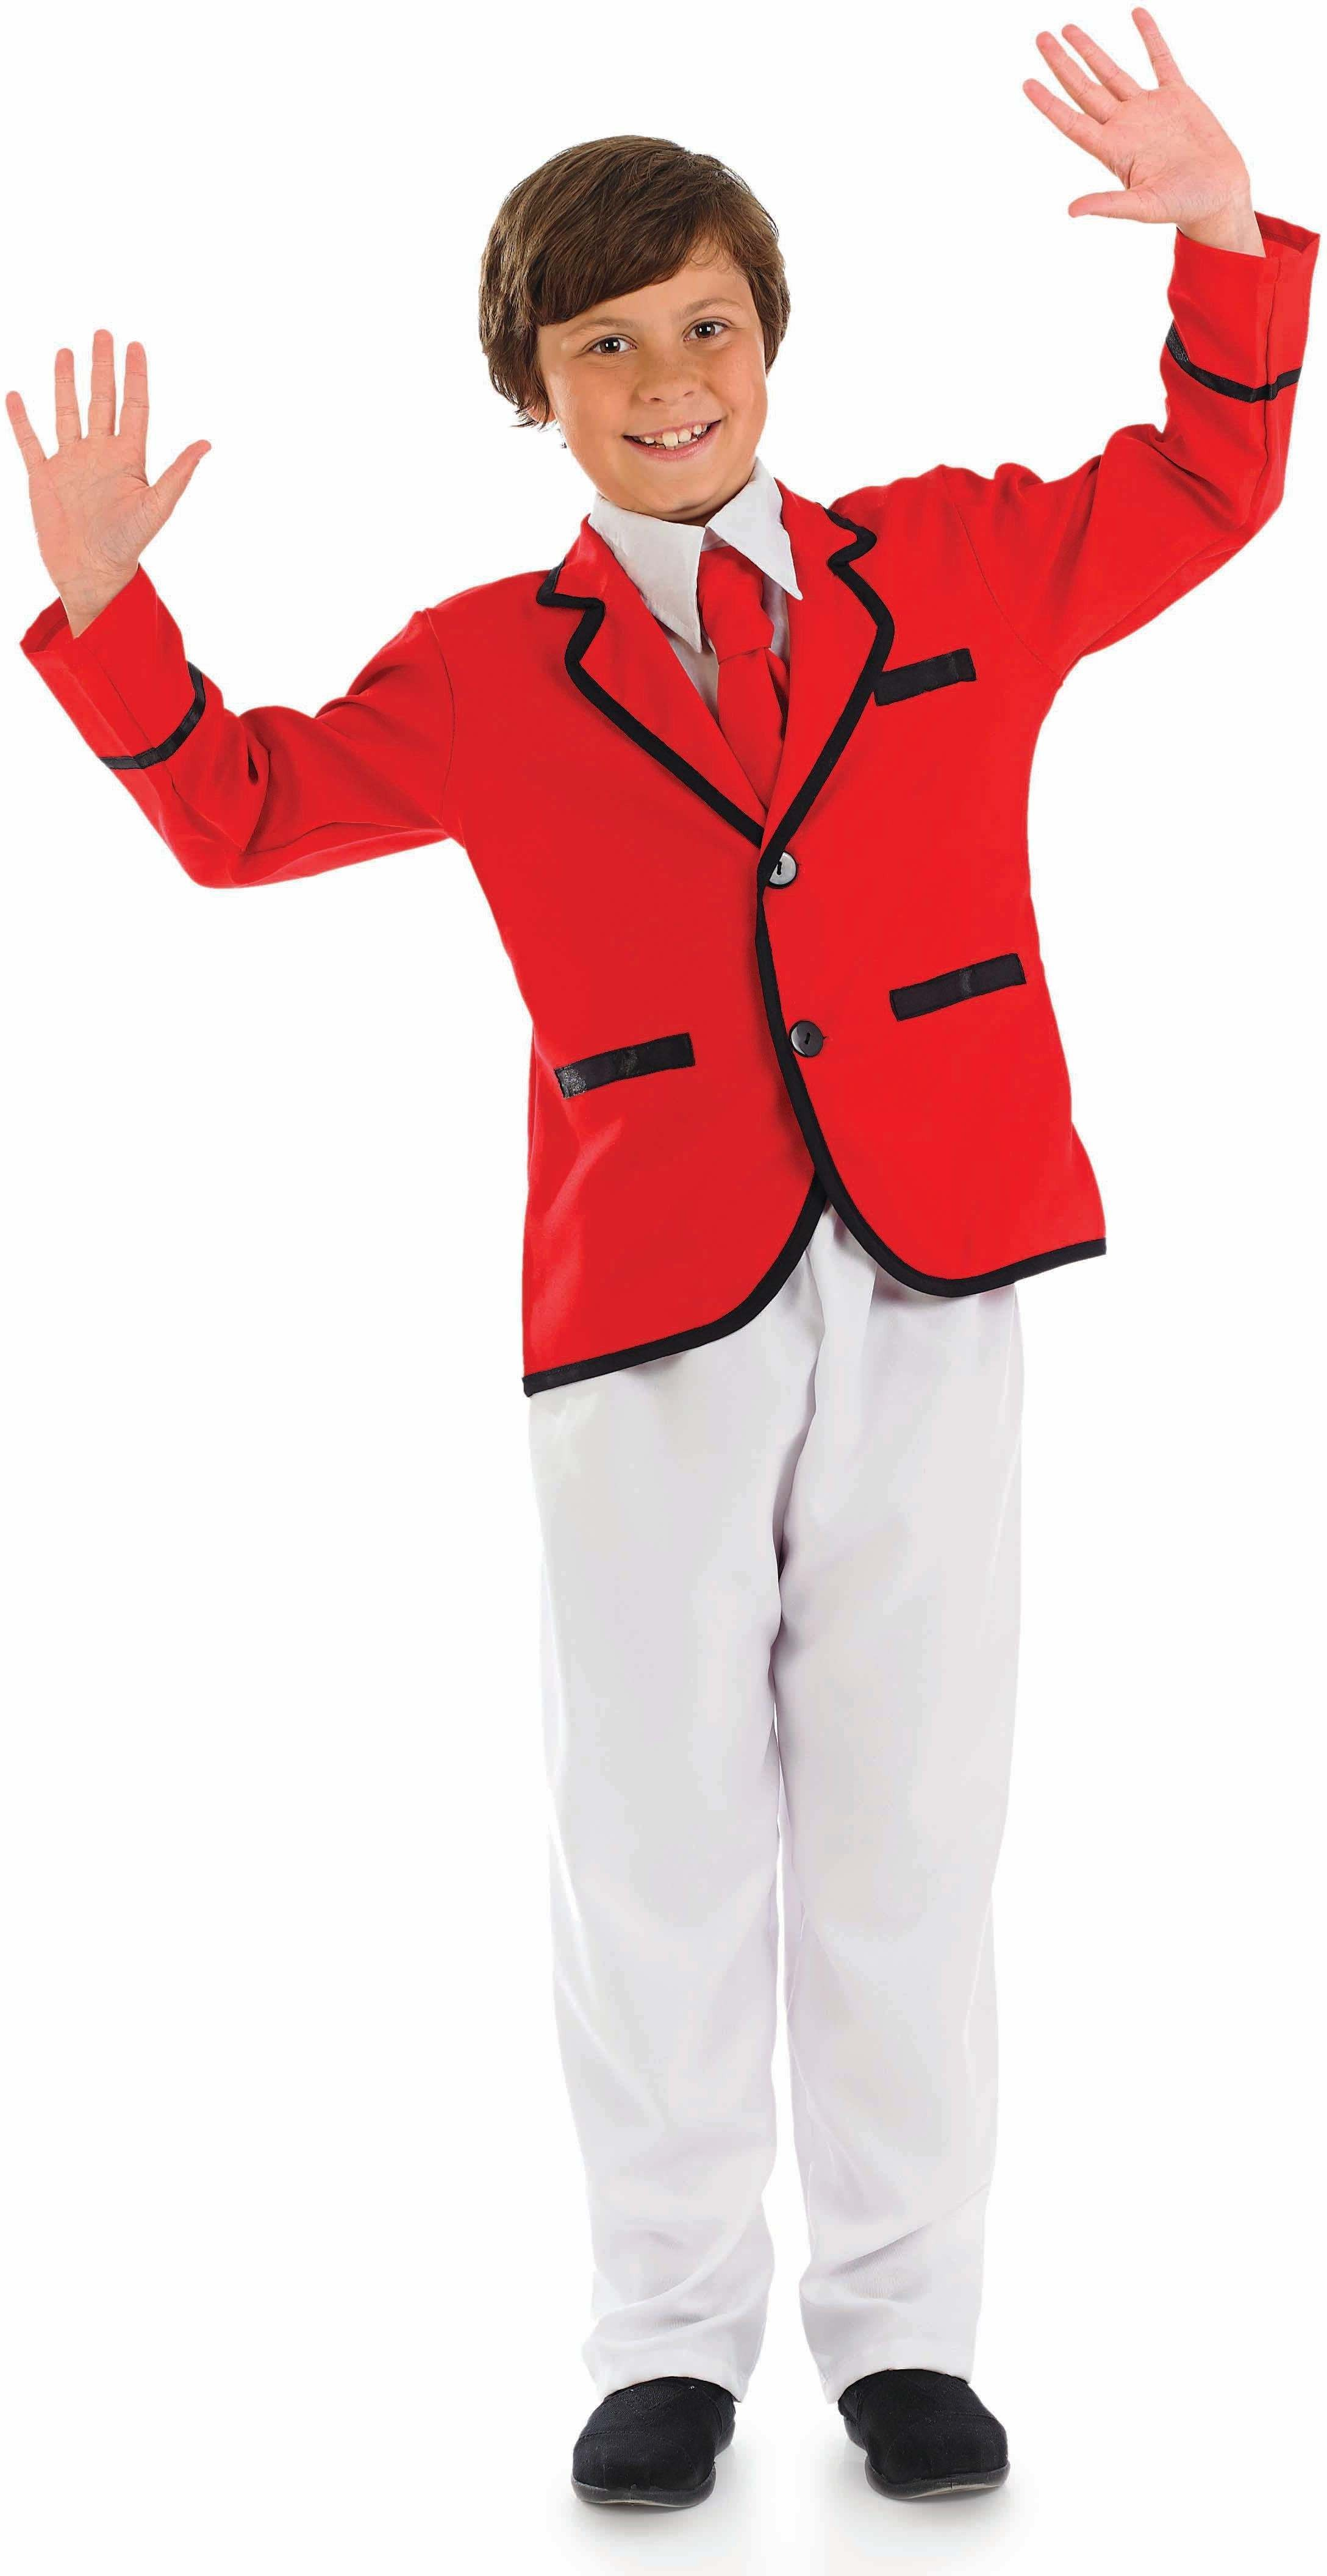 Boys Boys Holiday Camp Helper Holidaycamp Outfit - (Red,White)